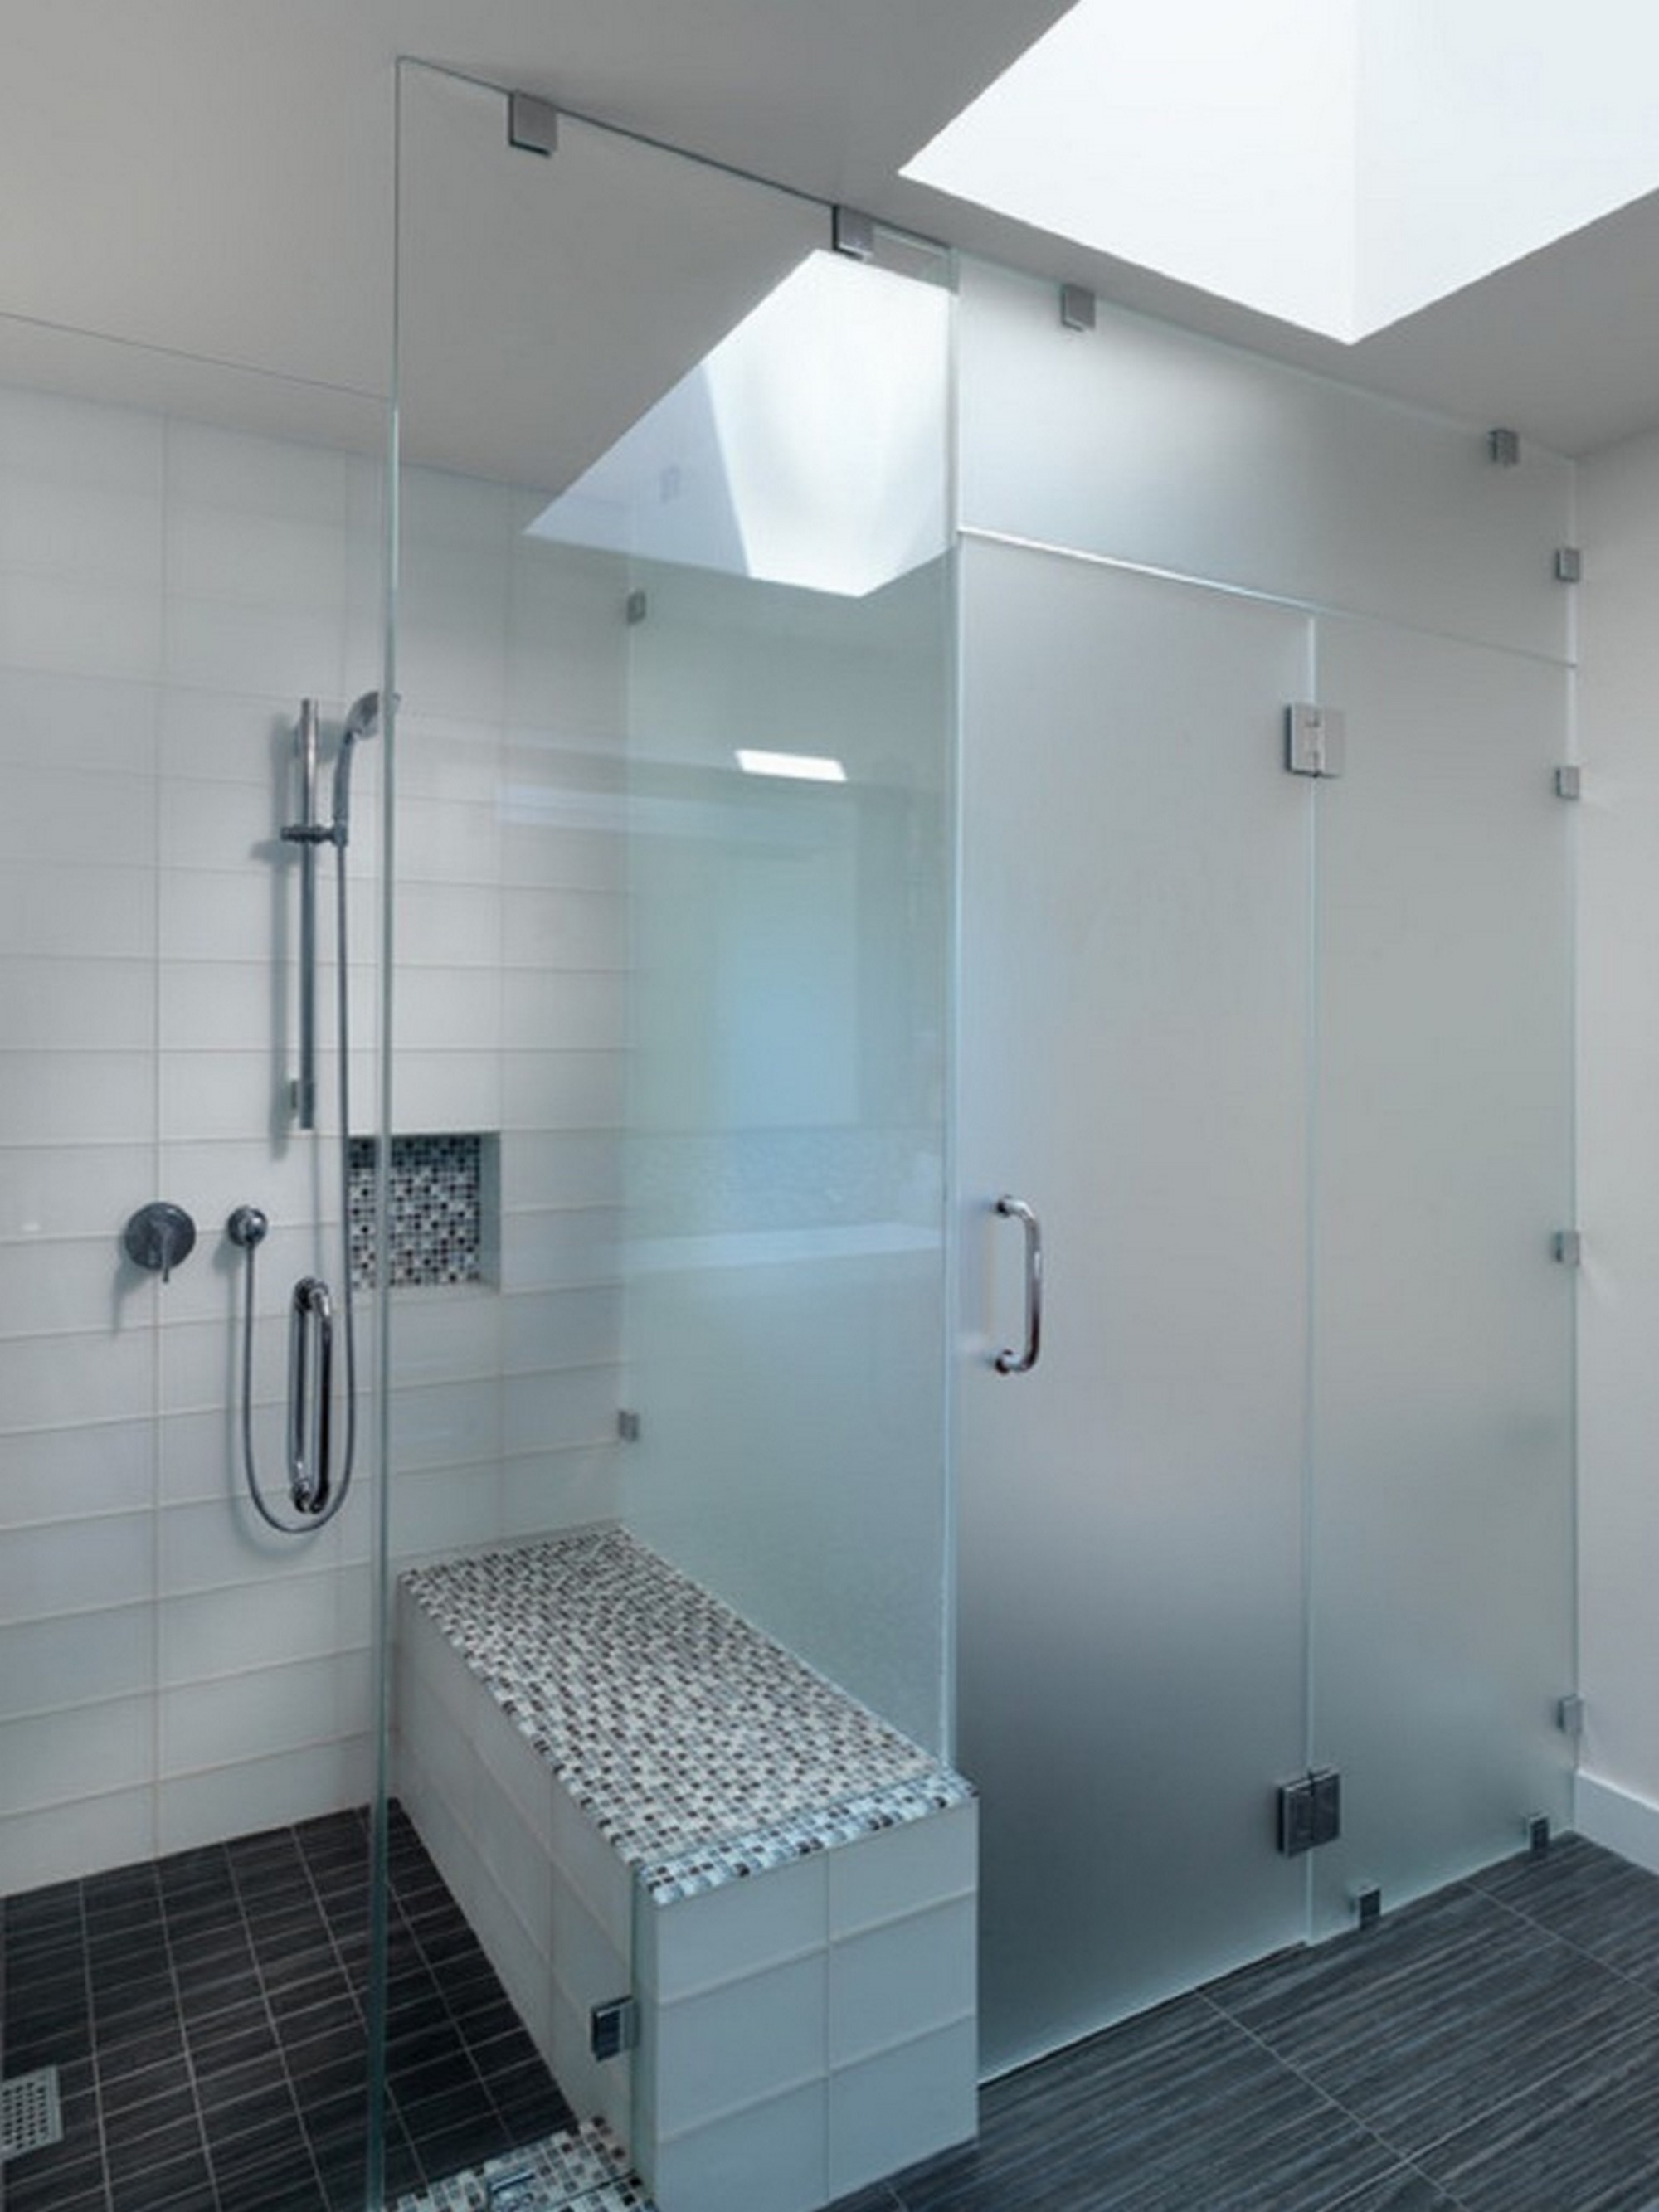 furniture-frosted-glass-doors-and-room-divider-for-modern-minimalist-bathroom-design-with-wall-mounted-shower-and-black-vinyl-floor-tiles-ideas-frosted-glass-doors-frosted-glass-doors